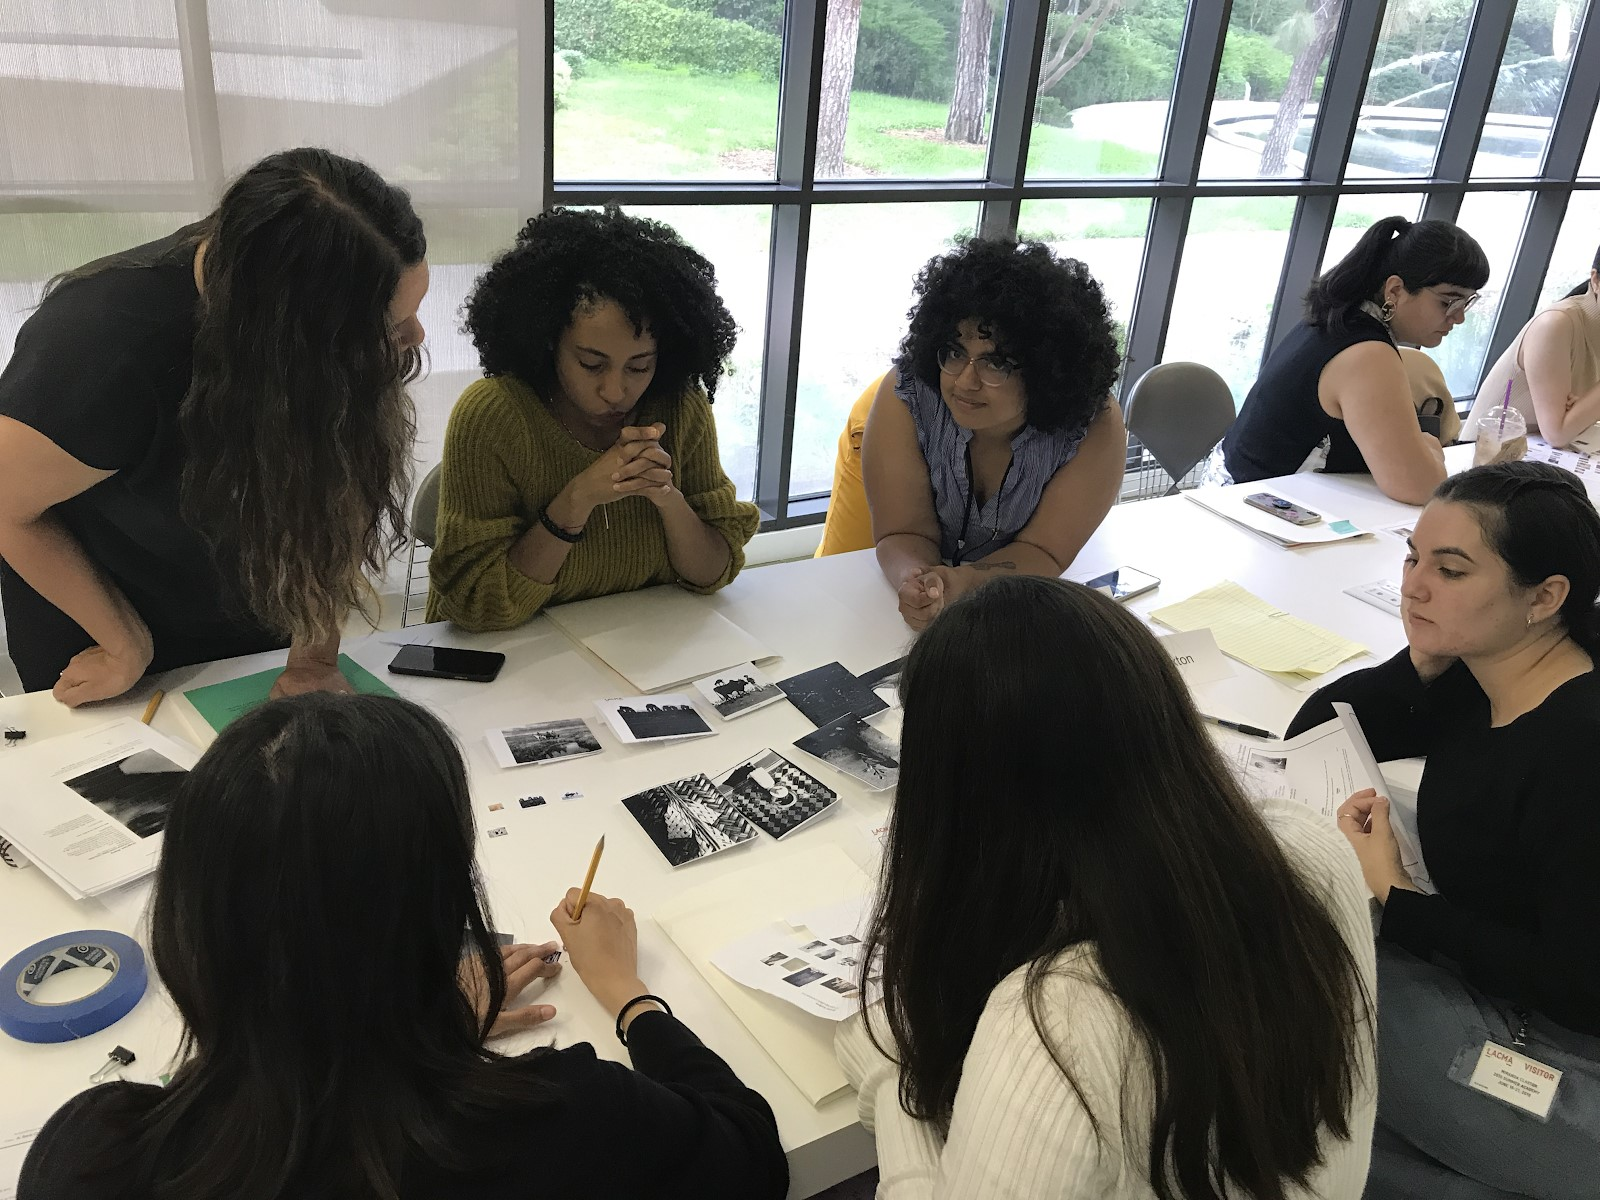 2019 Mellon Summer Academy students: Helen Pinto, Sajdah Nasir, Jennifer Cernada (advisor), Miranda Claxton, Mia Harder, and Jennifer Payan working on their exhibition idea, photo courtesy Hilary Walter